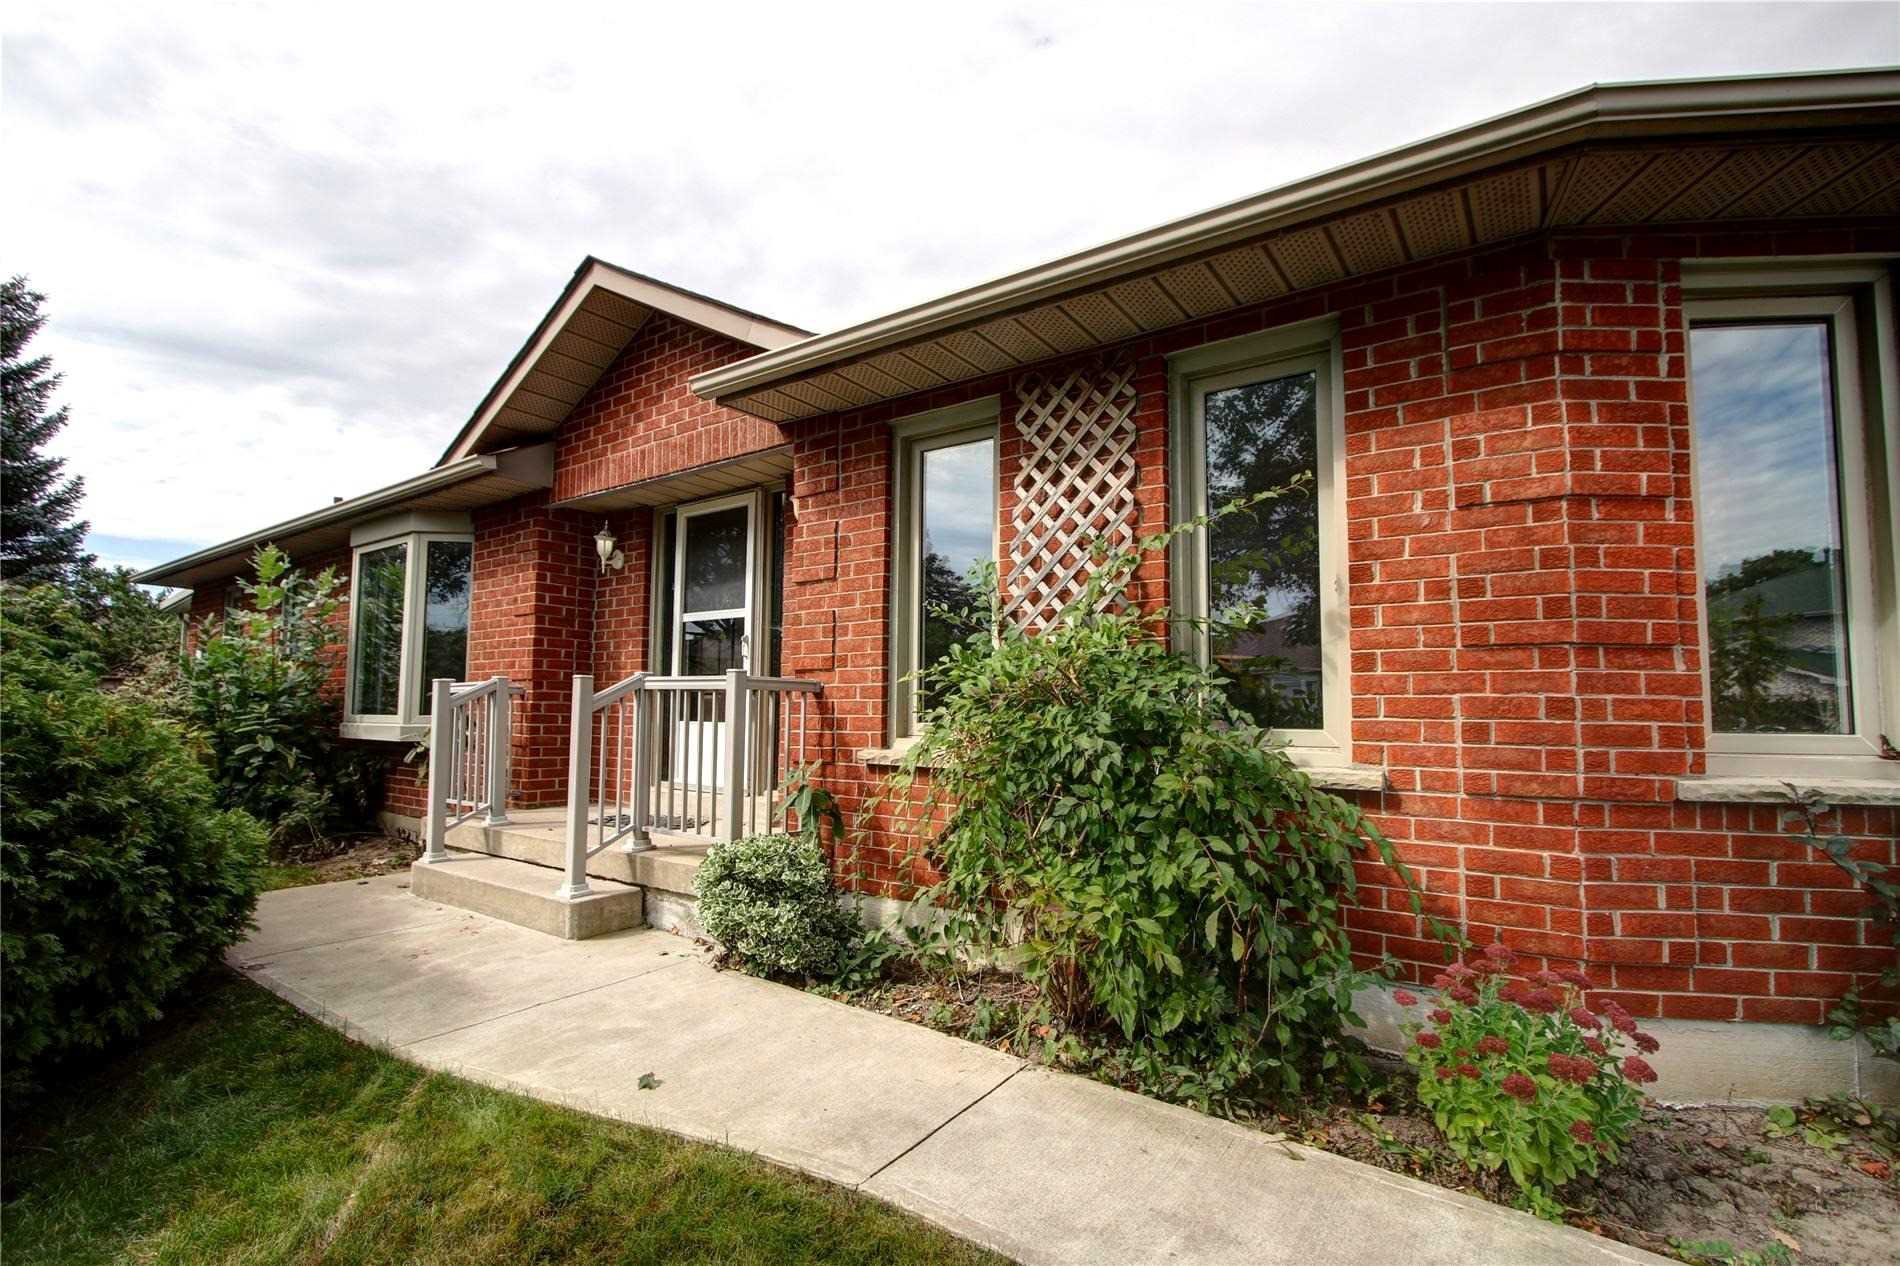 Main Photo: 2 Wyndfield Cres in Whitby: Freehold for sale : MLS®# E4591604